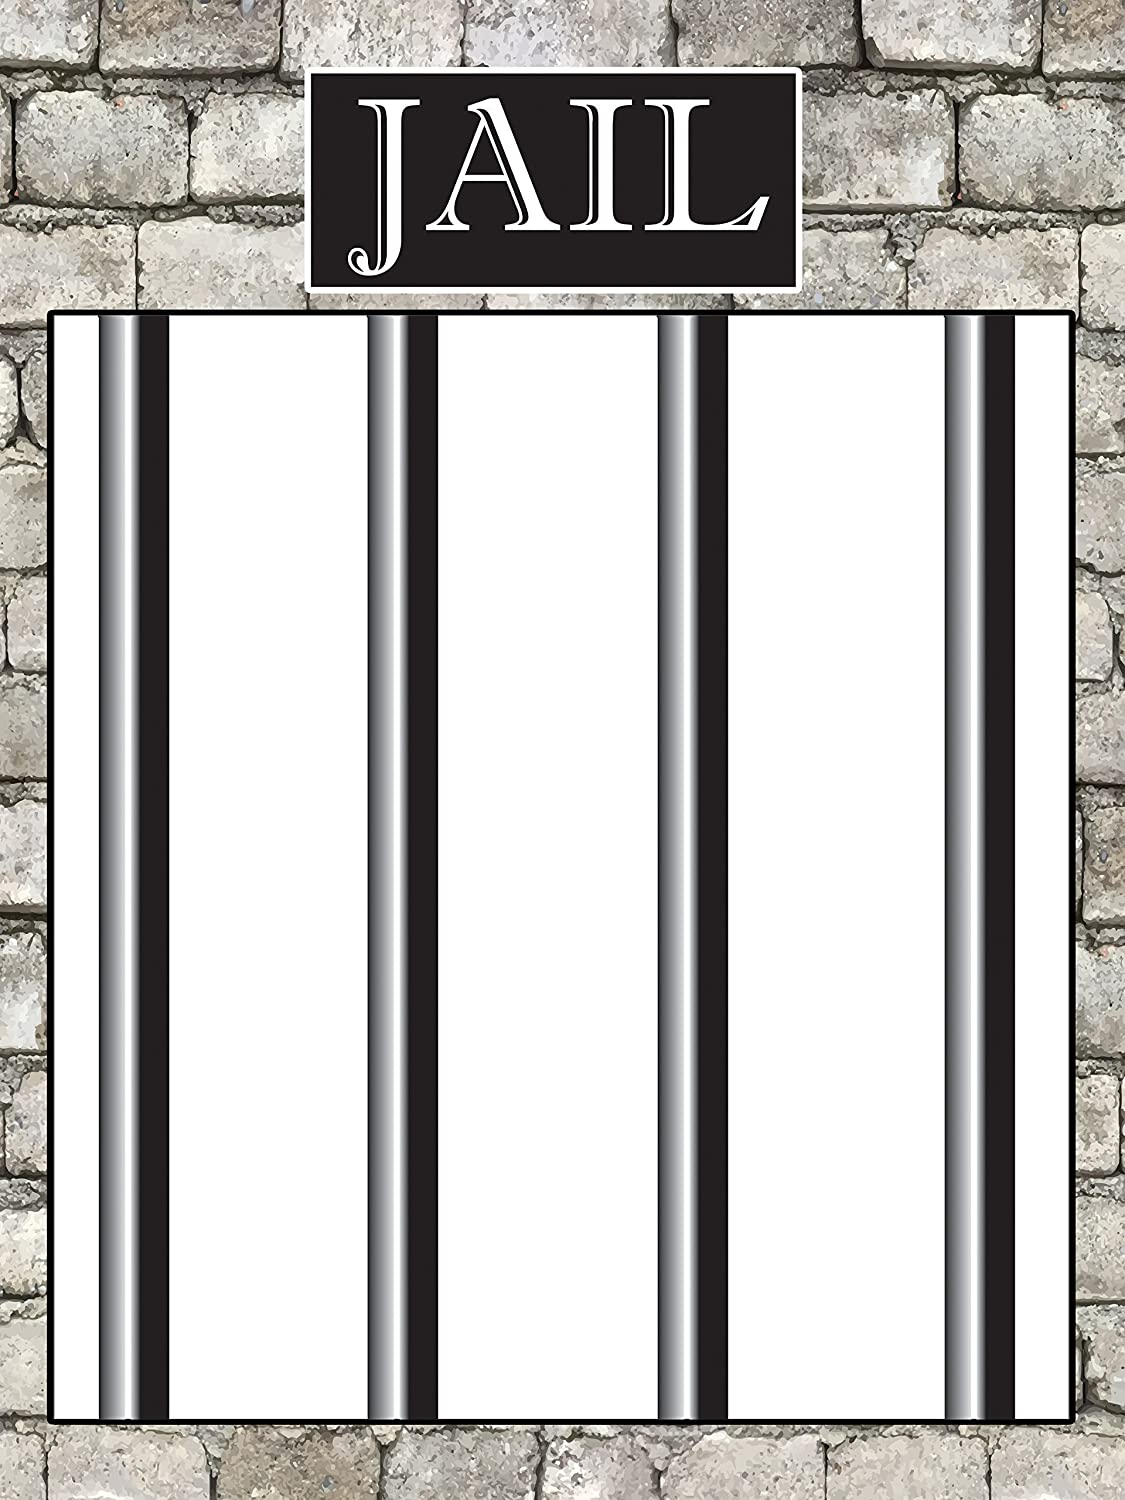 Amazon.com: Custom Jail Party Photo Booth Frame - Size 36x24, 48x36 ...